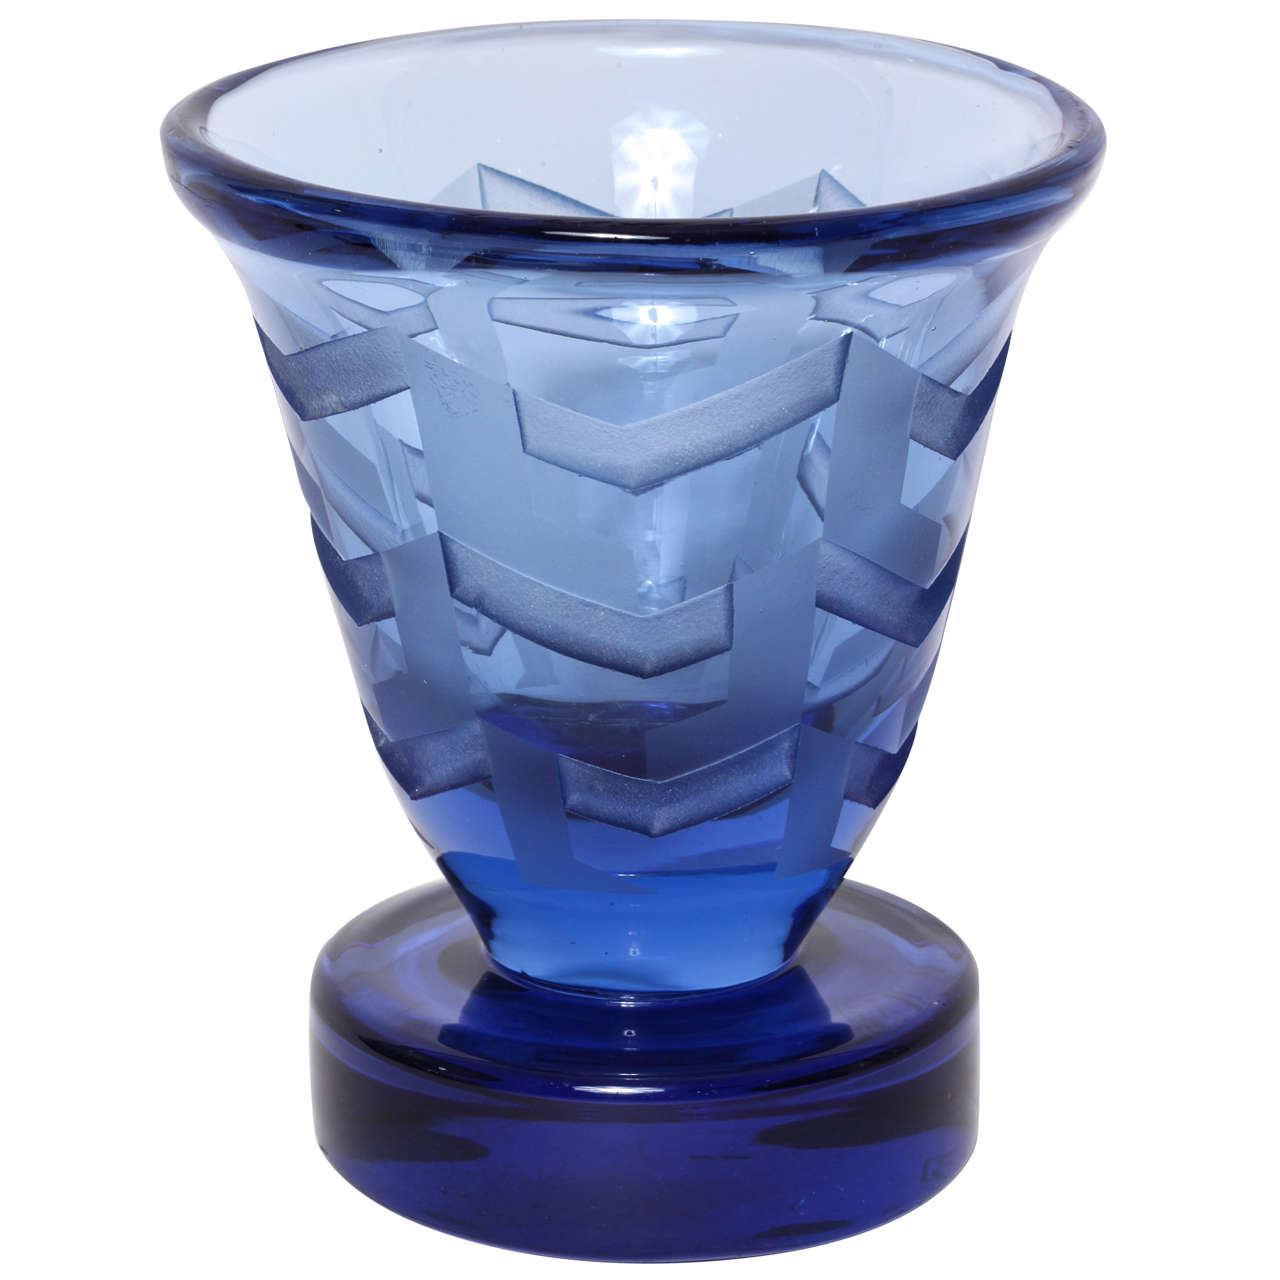 Jean Luce French Art Deco Etched Blue Glass Vase on Circular Base